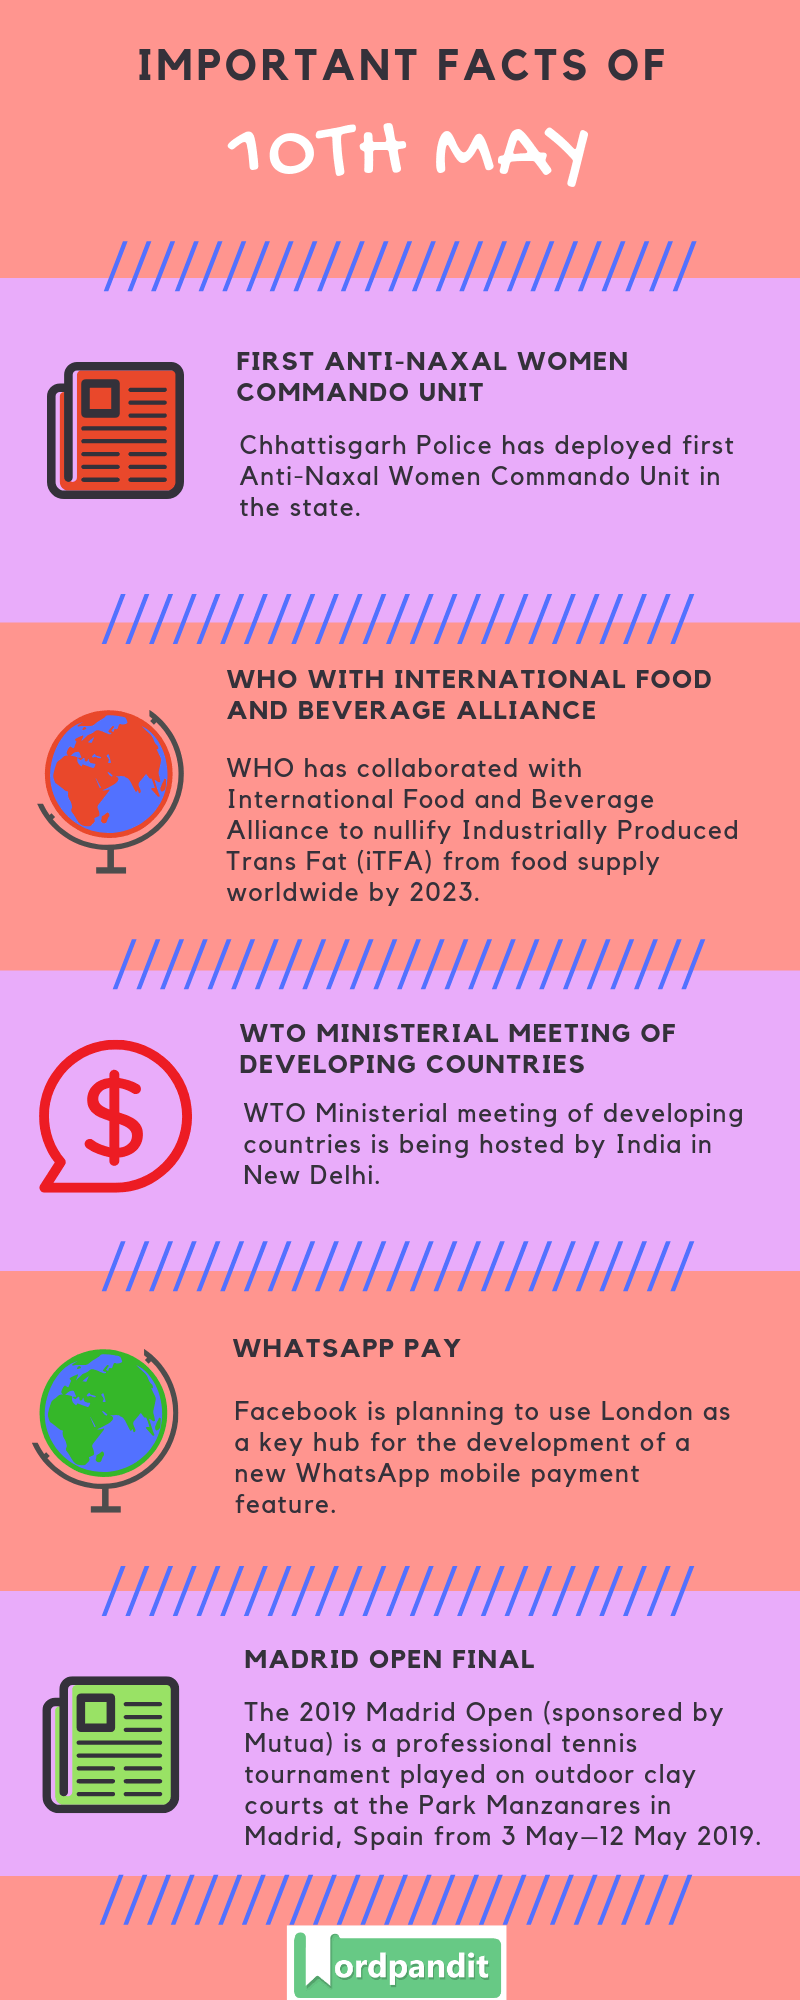 Daily Current Affairs 10 May 2019 Current Affairs Quiz 10 May 2019 Current Affairs Infographic